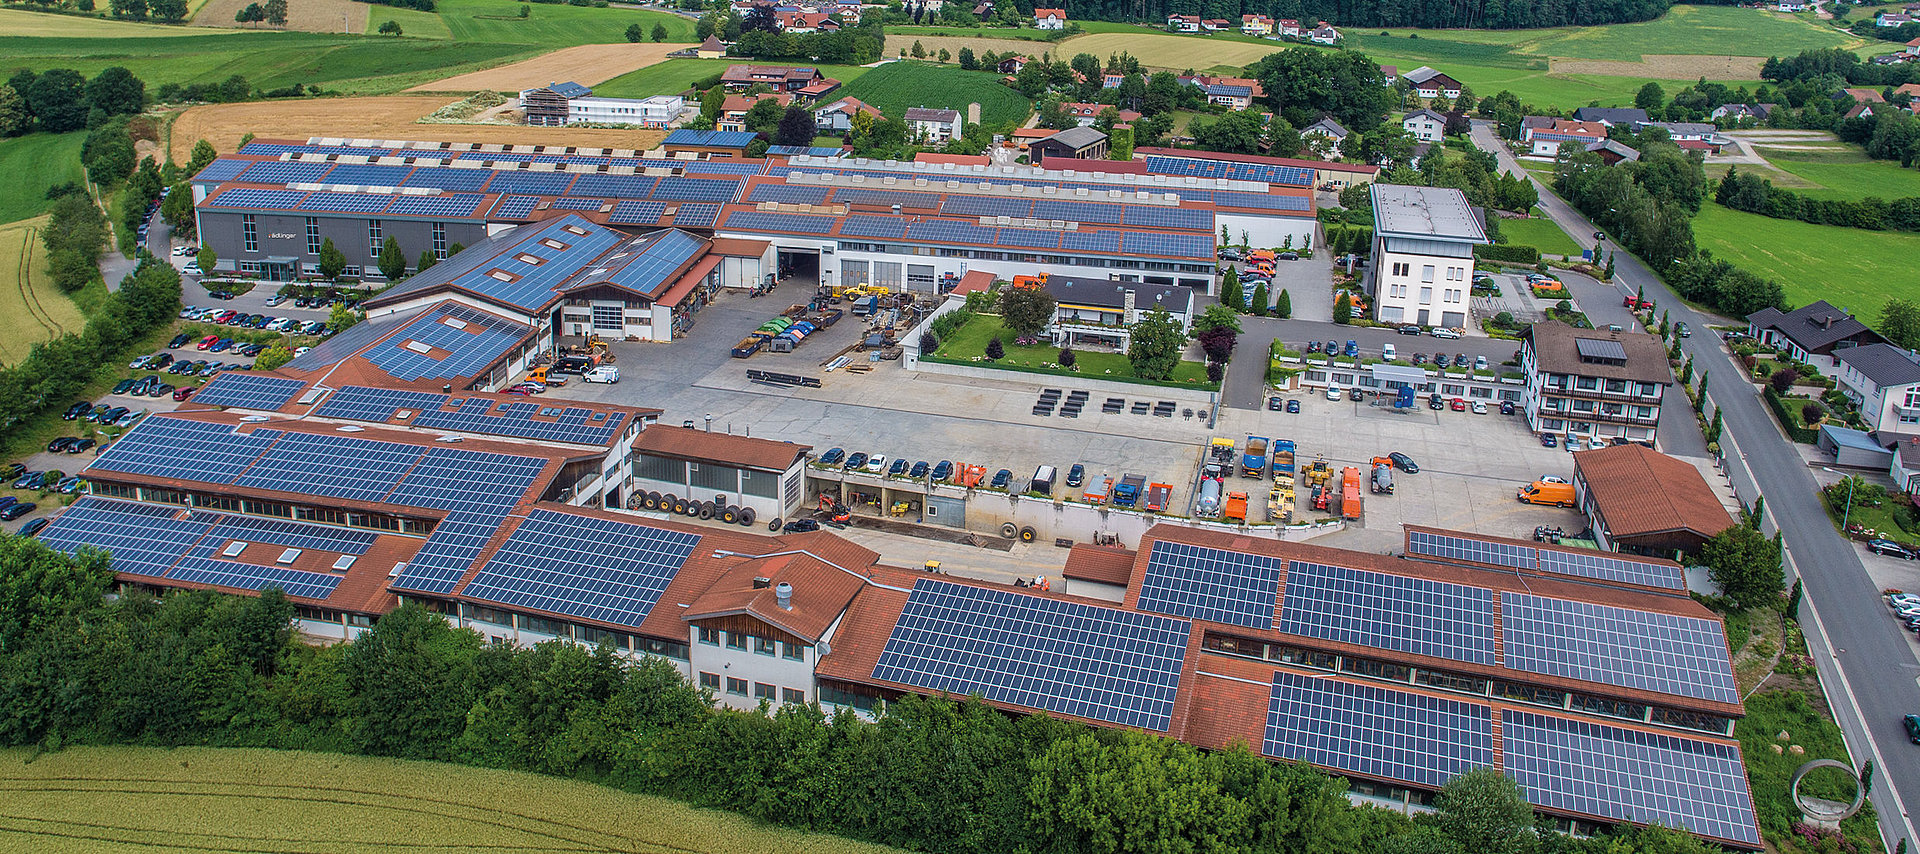 Aerial view of the headquarters and facilities of Rädlinger Maschinen- und Stahlbau GmbH in Cham, Germany